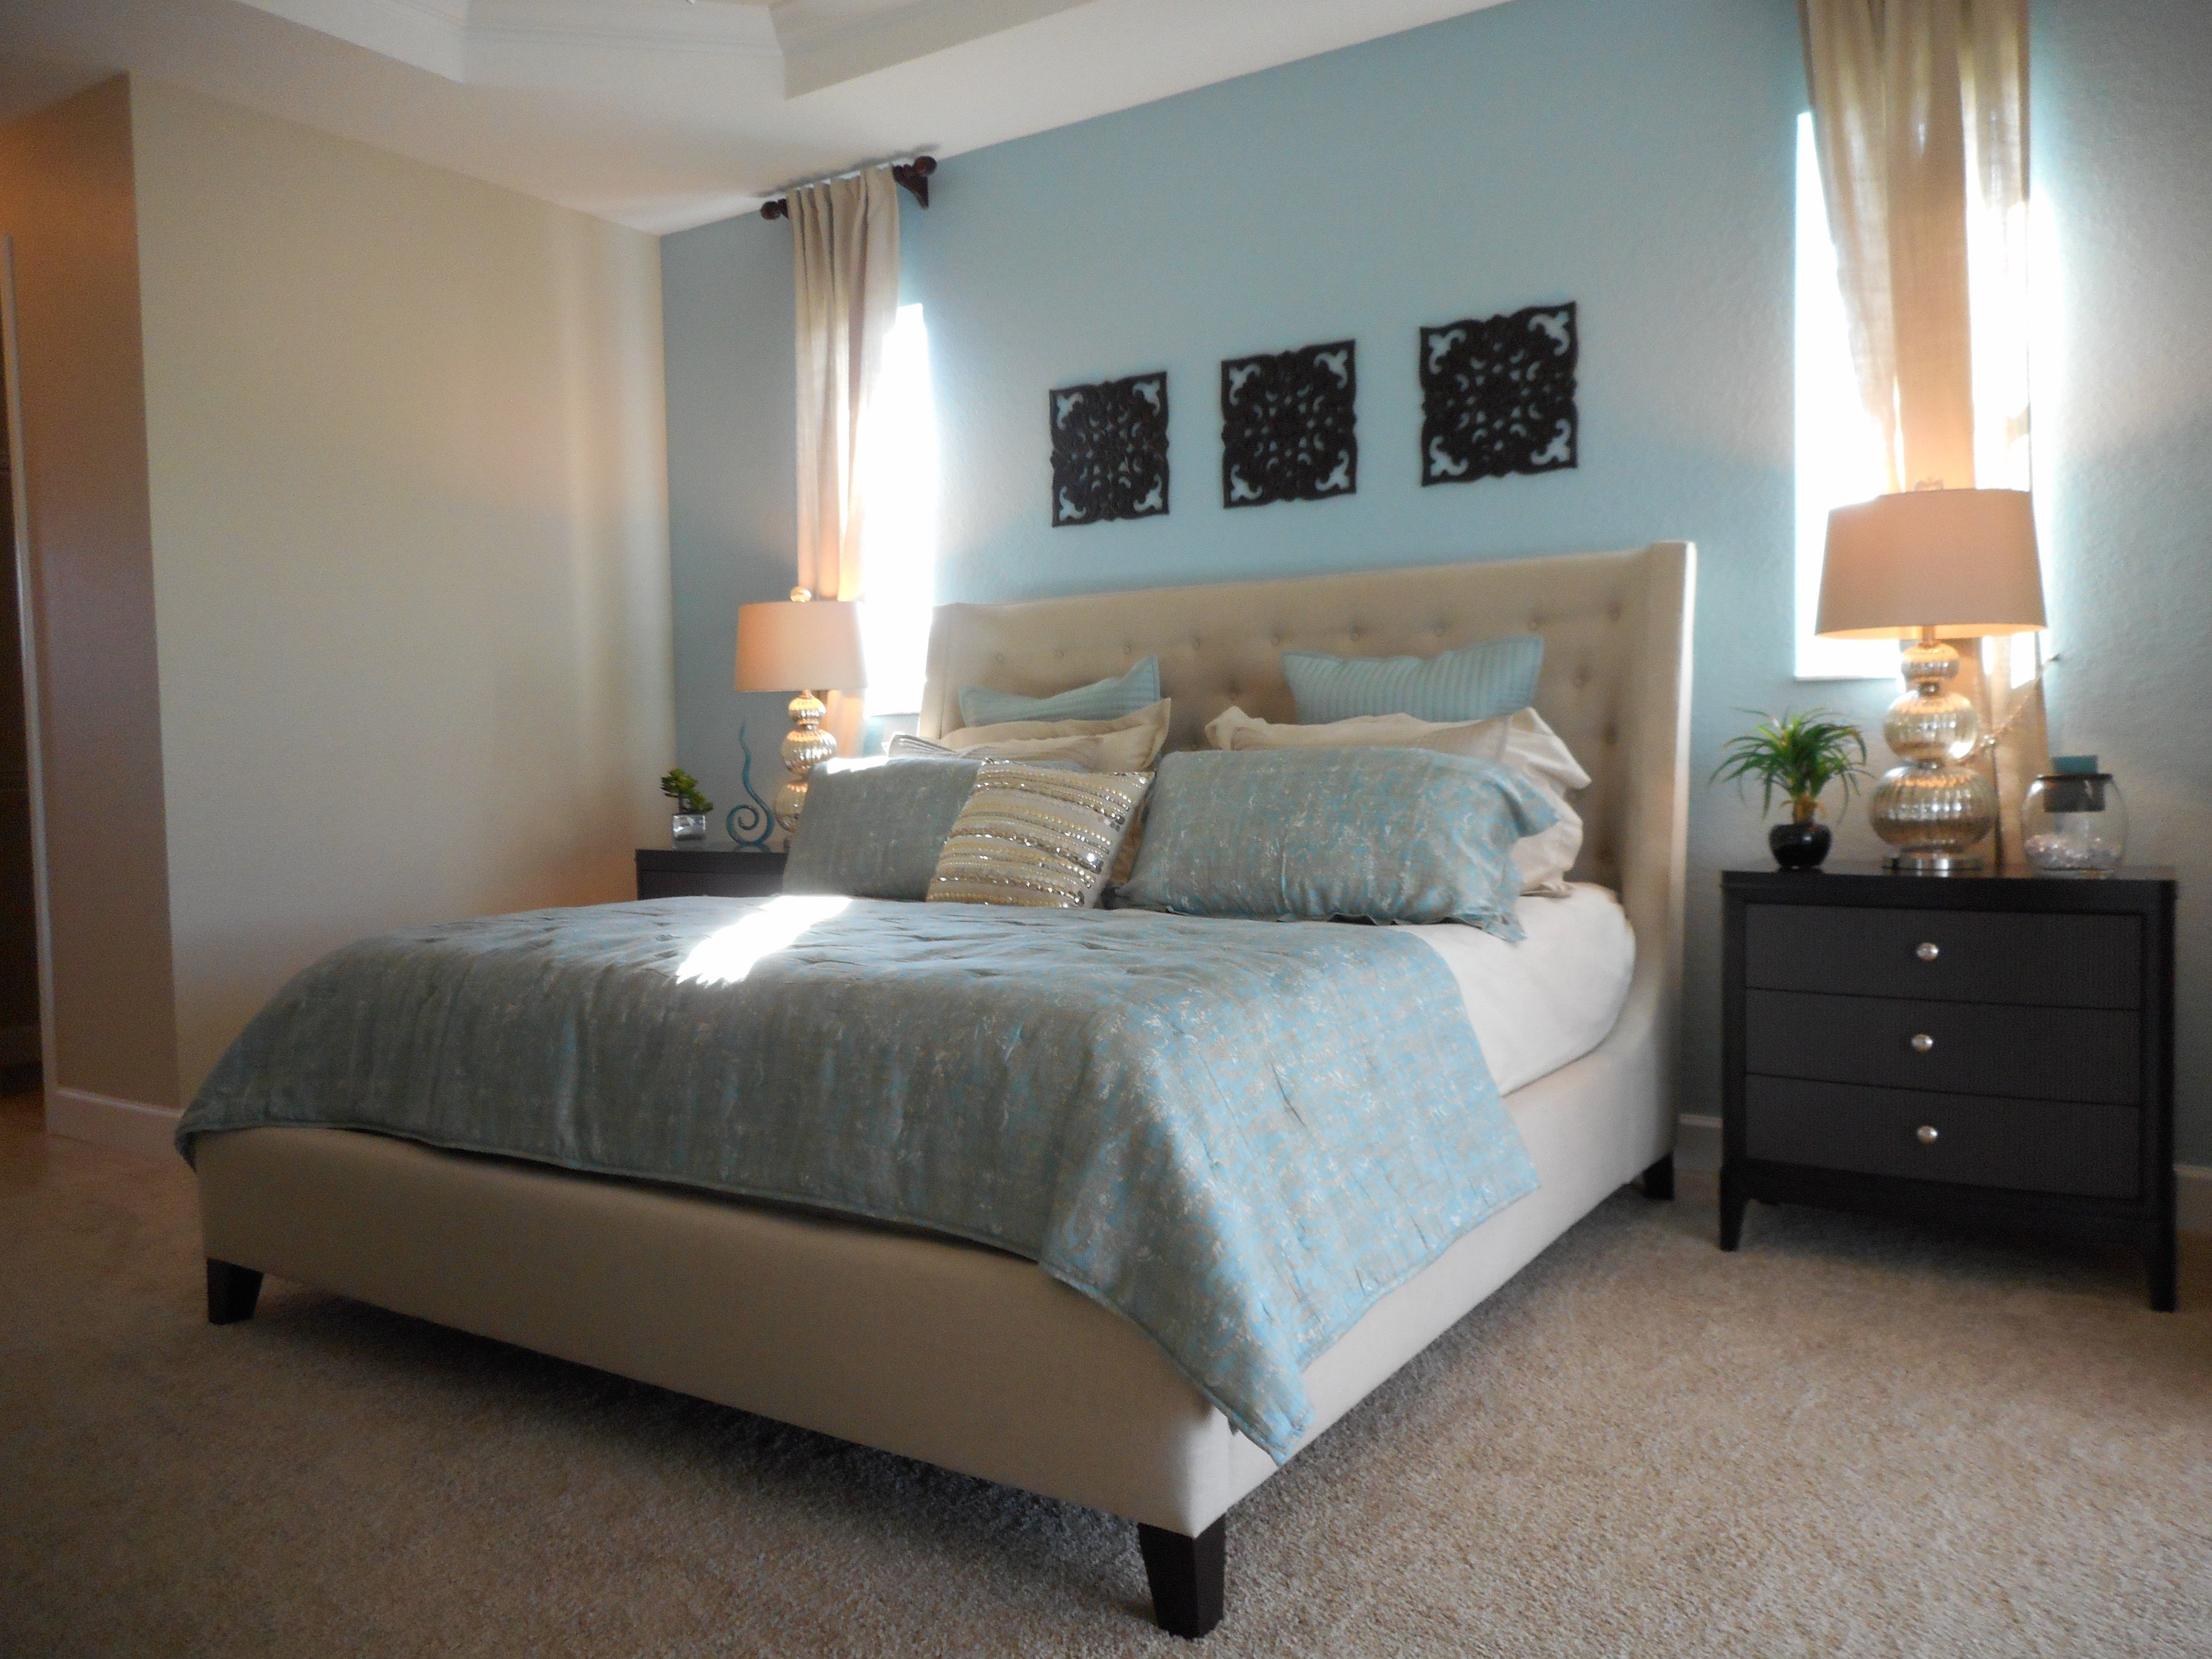 Bedroom with a queen sized bed and a night stand with a lamp.